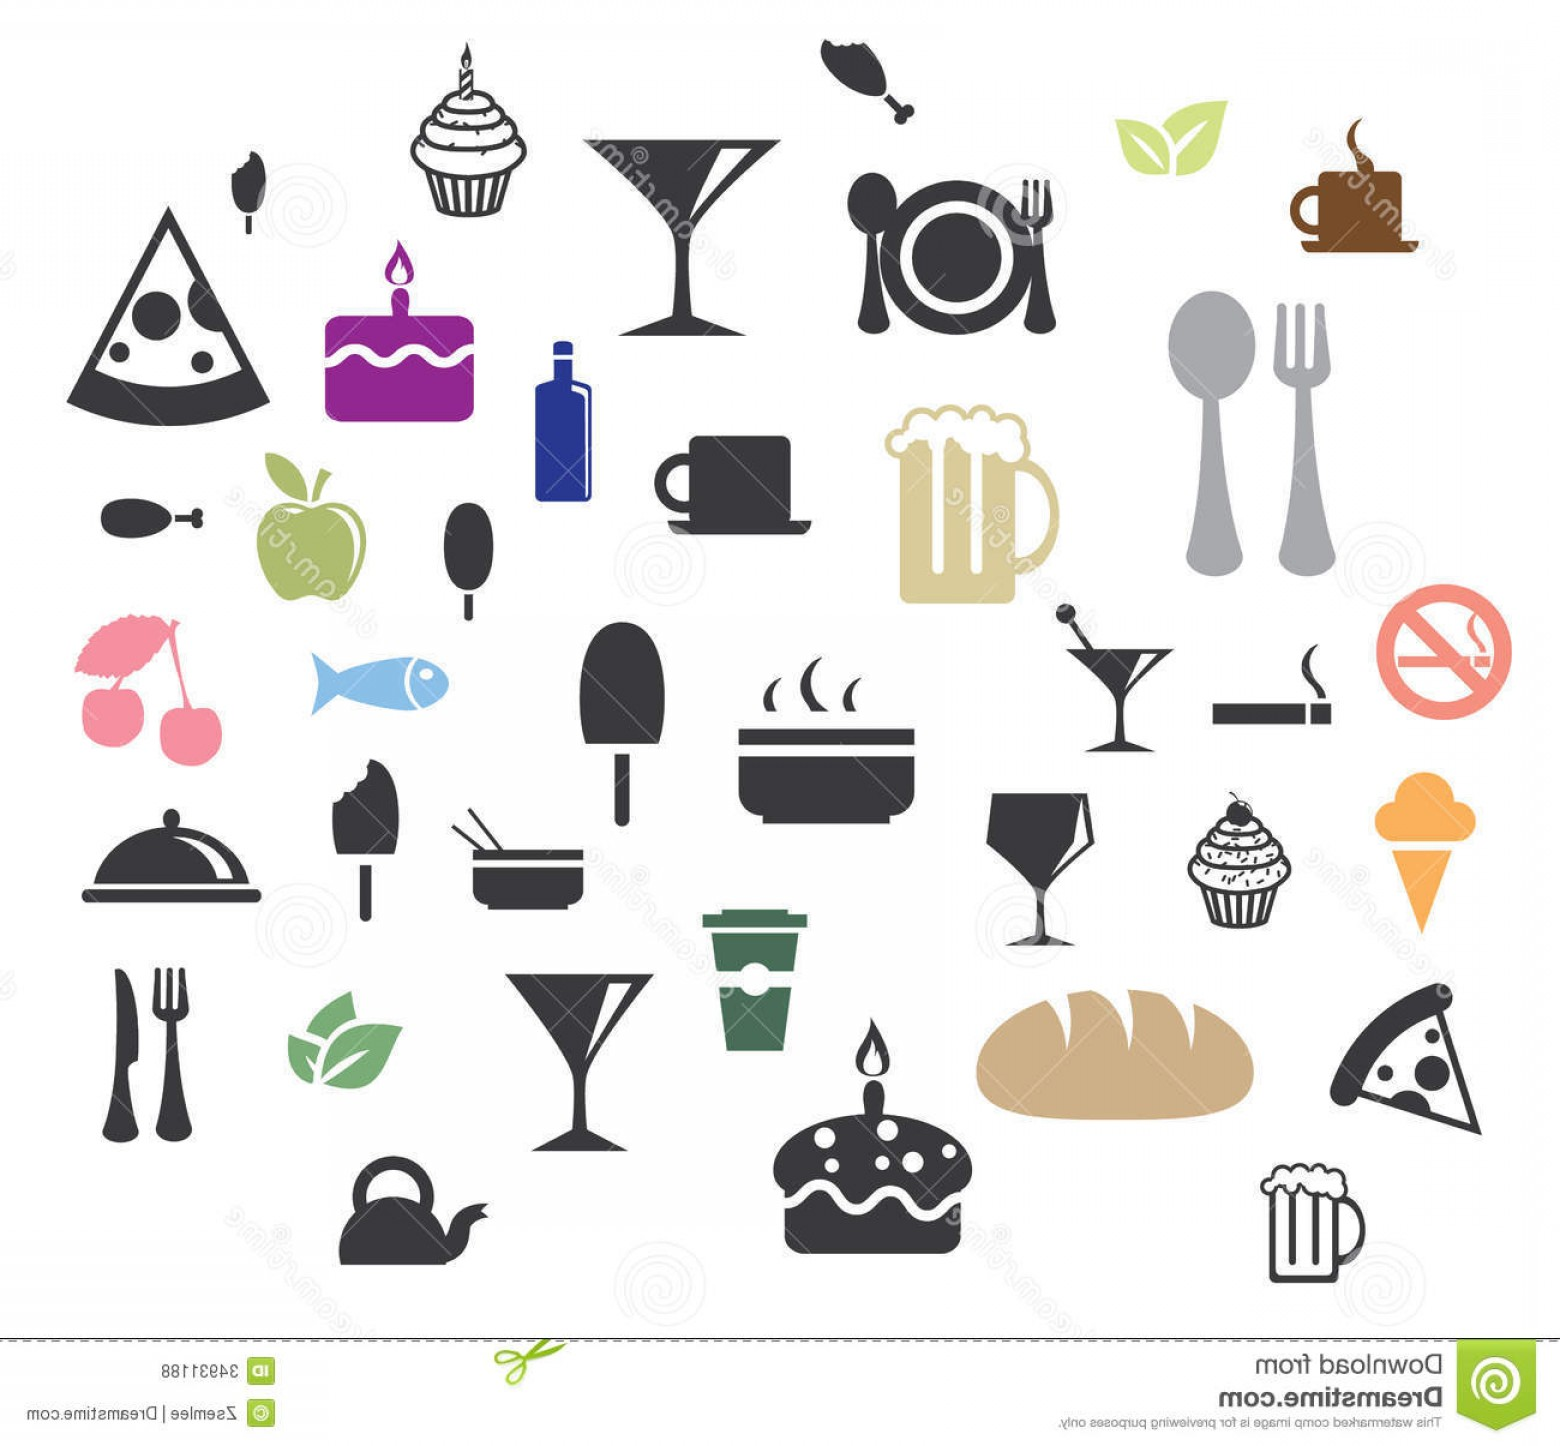 L Unch Icon In Vector: Royalty Free Stock Photos Food Icons Vector Various Mini Image